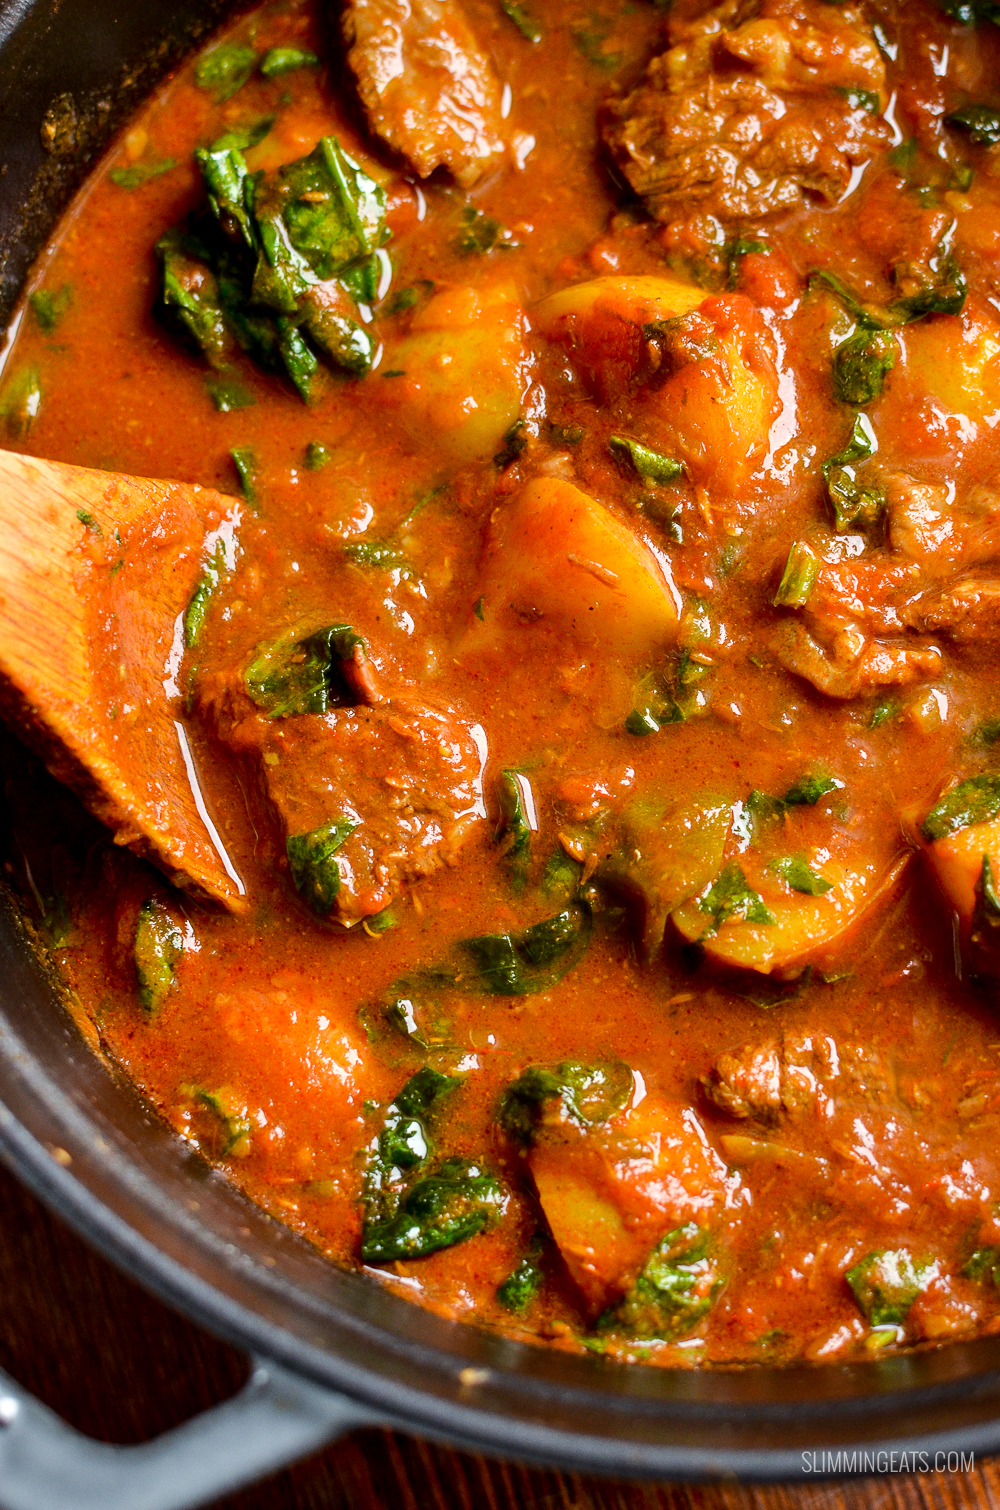 Syn Free Beef And Potato Curry Slimming Eats Slimming